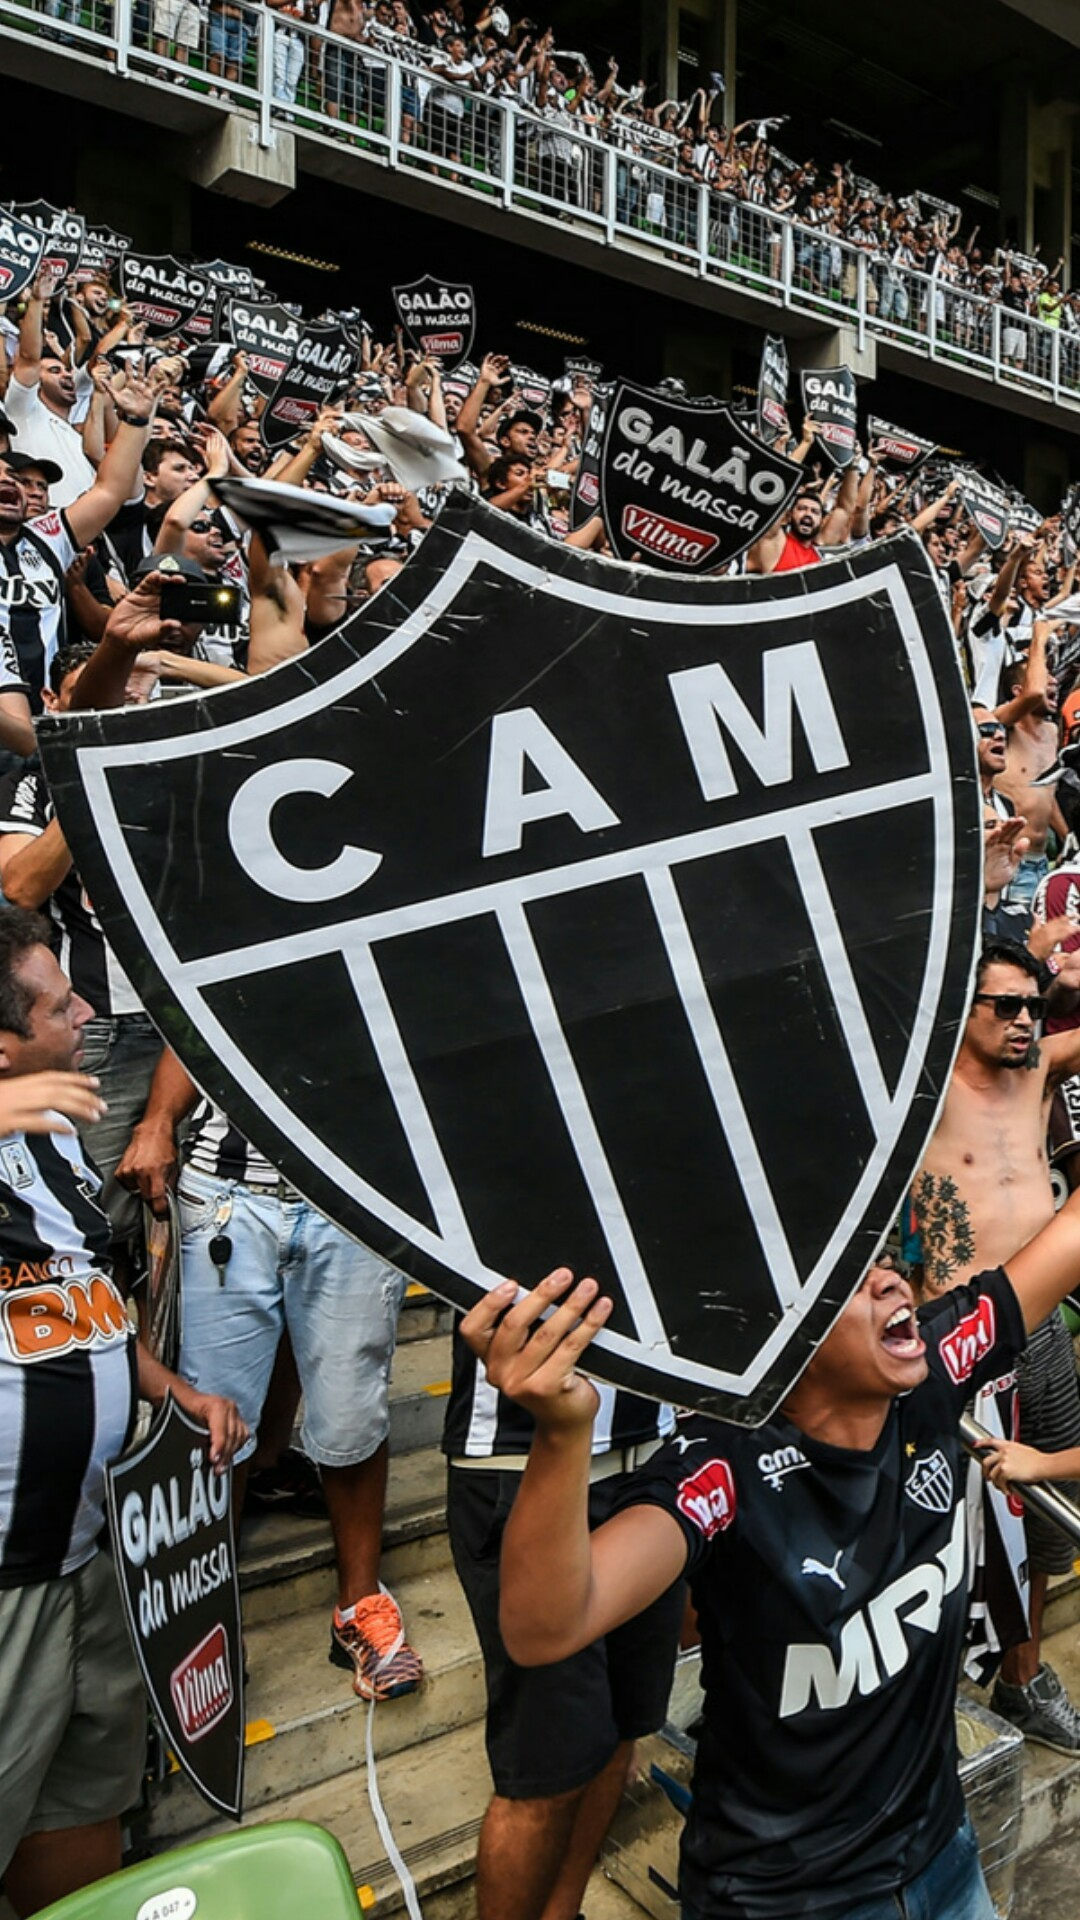 Download Galo Wallpapers Atletico Mg Wallpaper Png Friends Of Cherry Valley